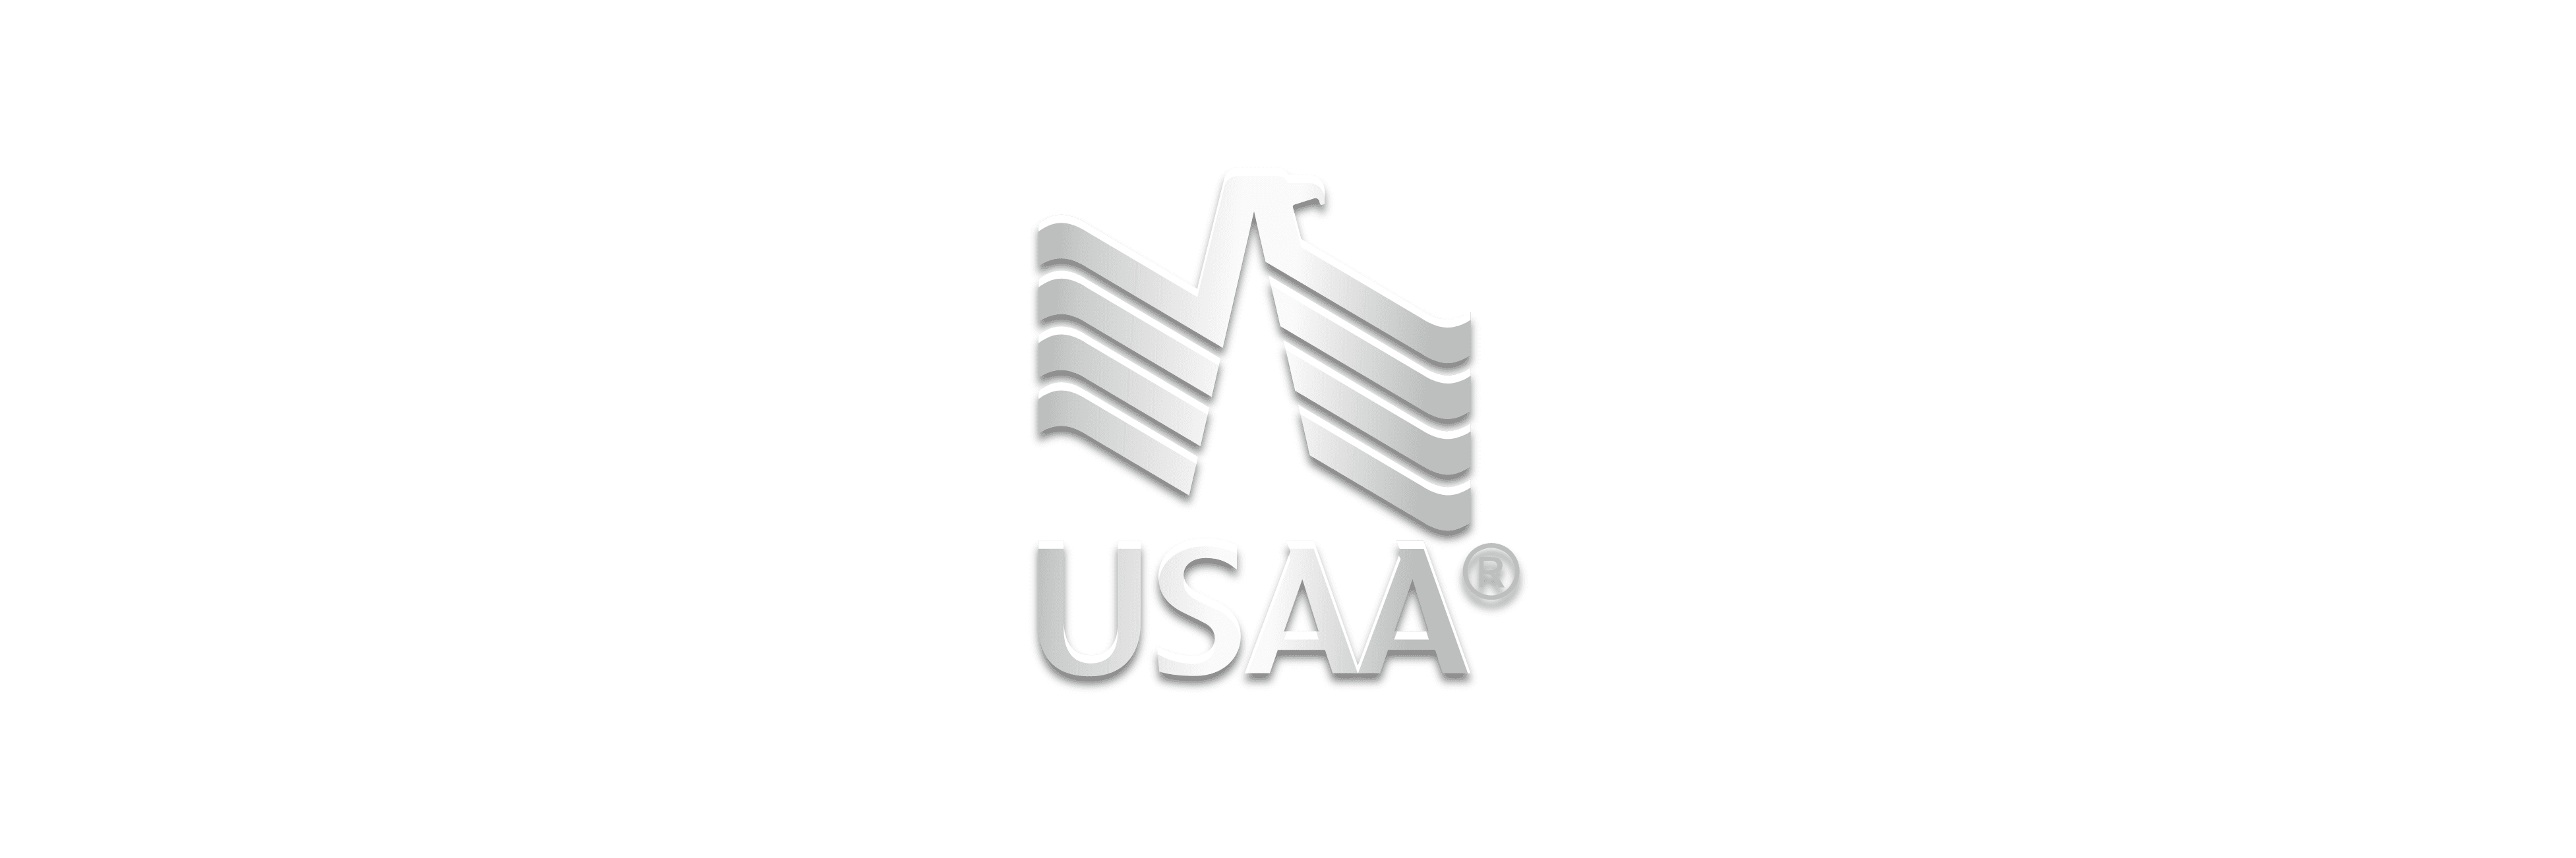 Usaa Cashiers Check >> The 7 Best No Fee Checking Accounts Of 2020